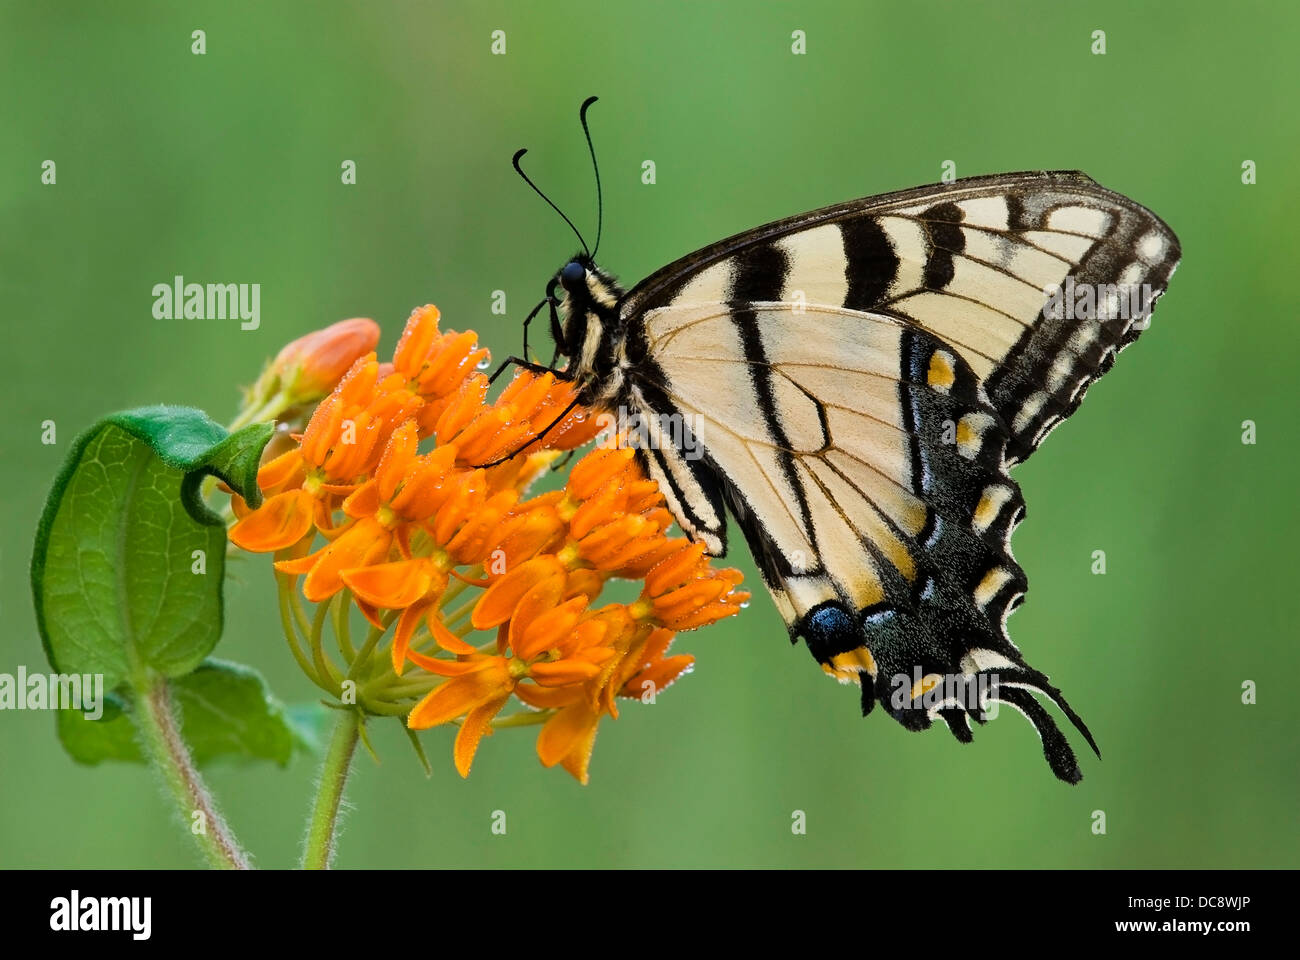 Eastern Tiger Swallowtail Butterfly Papilio glaucus on Butterfly Weed Asclepias tuberosa  E USA - Stock Image